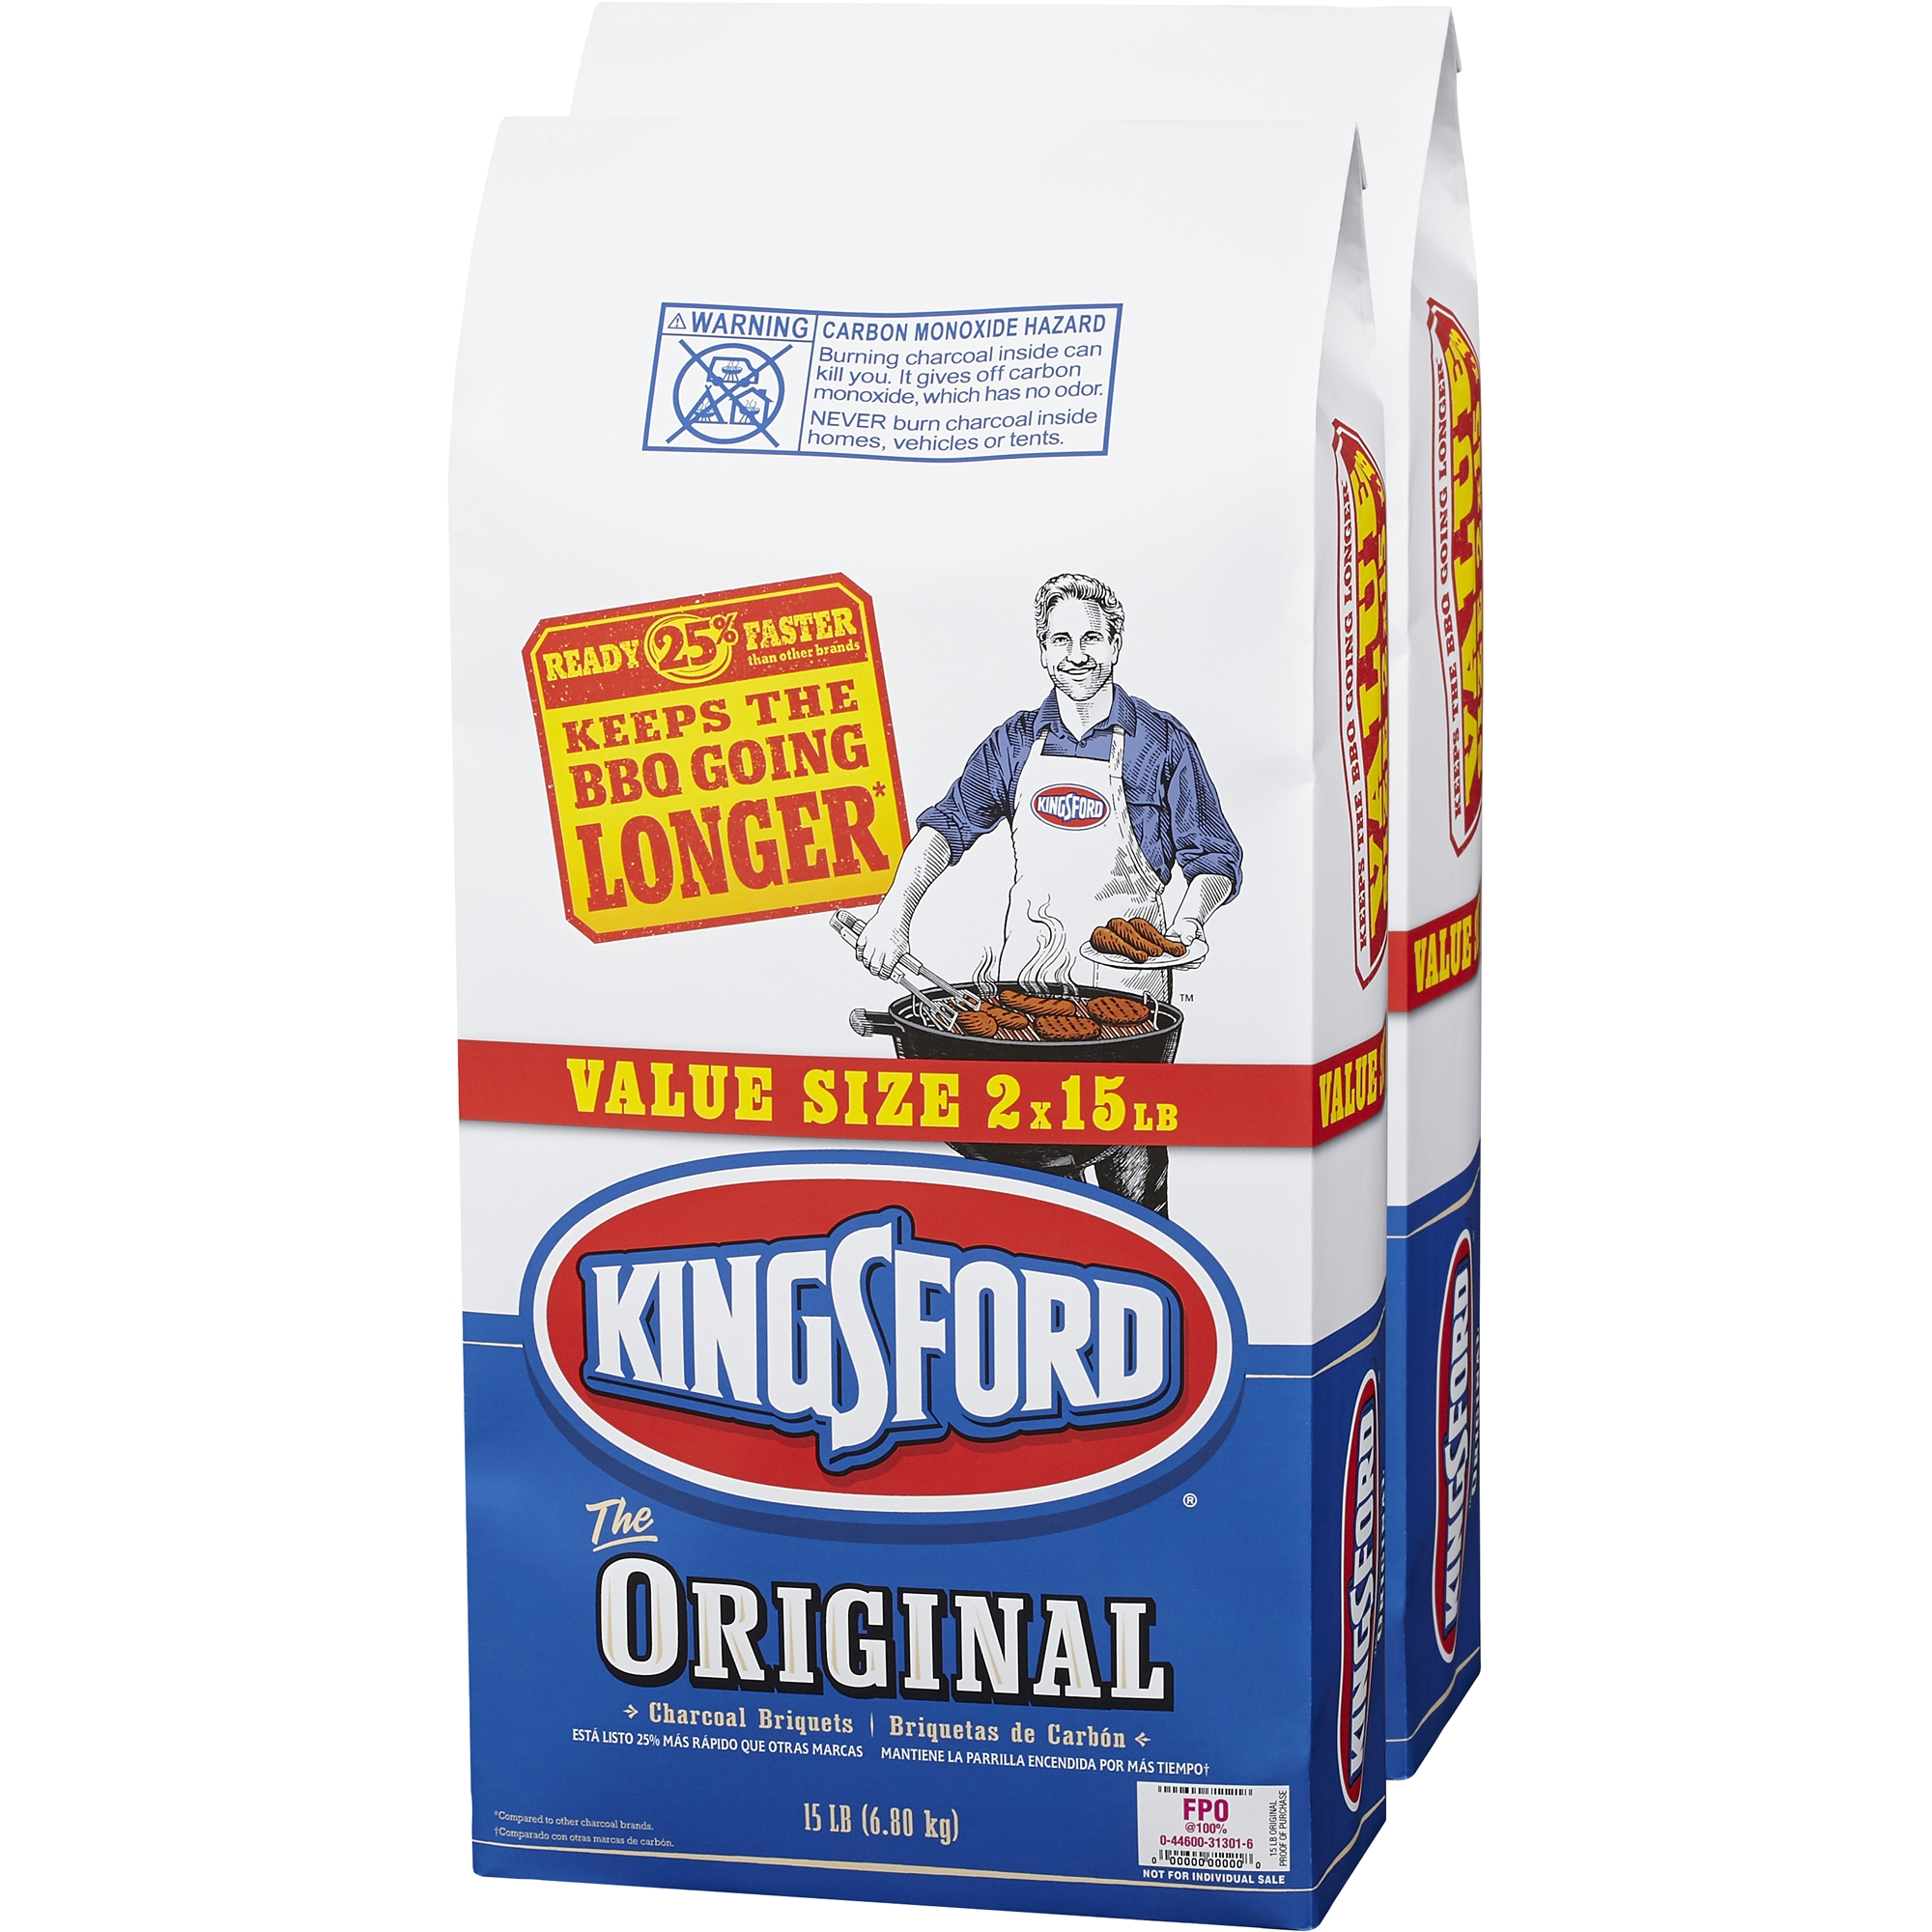 Kingsford Original Charcoal Briquets, 15 lbs, 2 ct